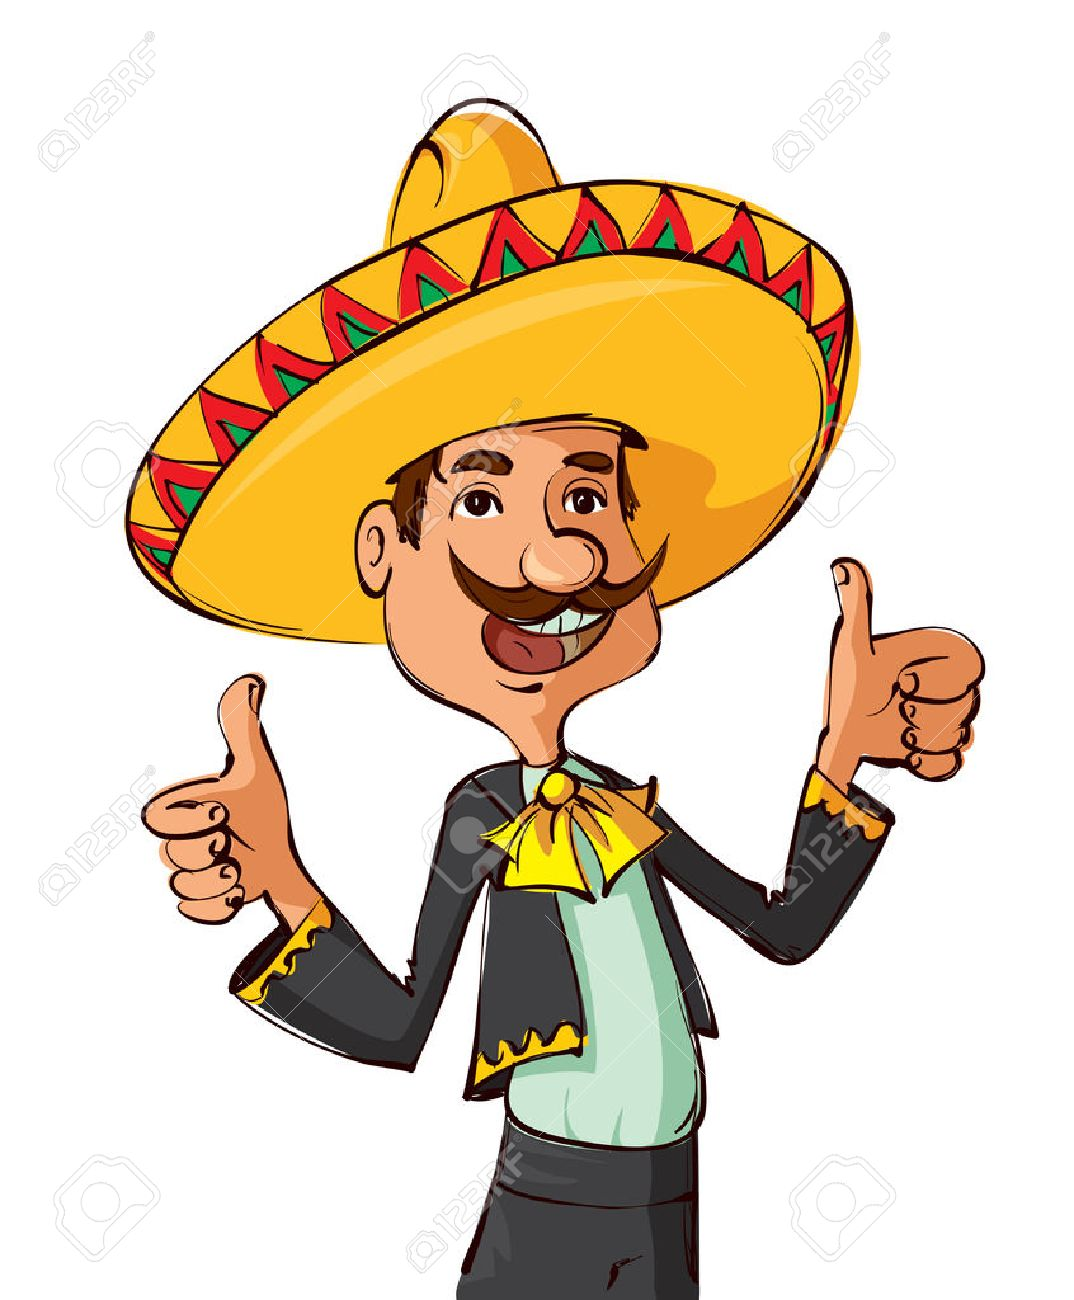 Man in sombrero clipart 3 » Clipart Station.